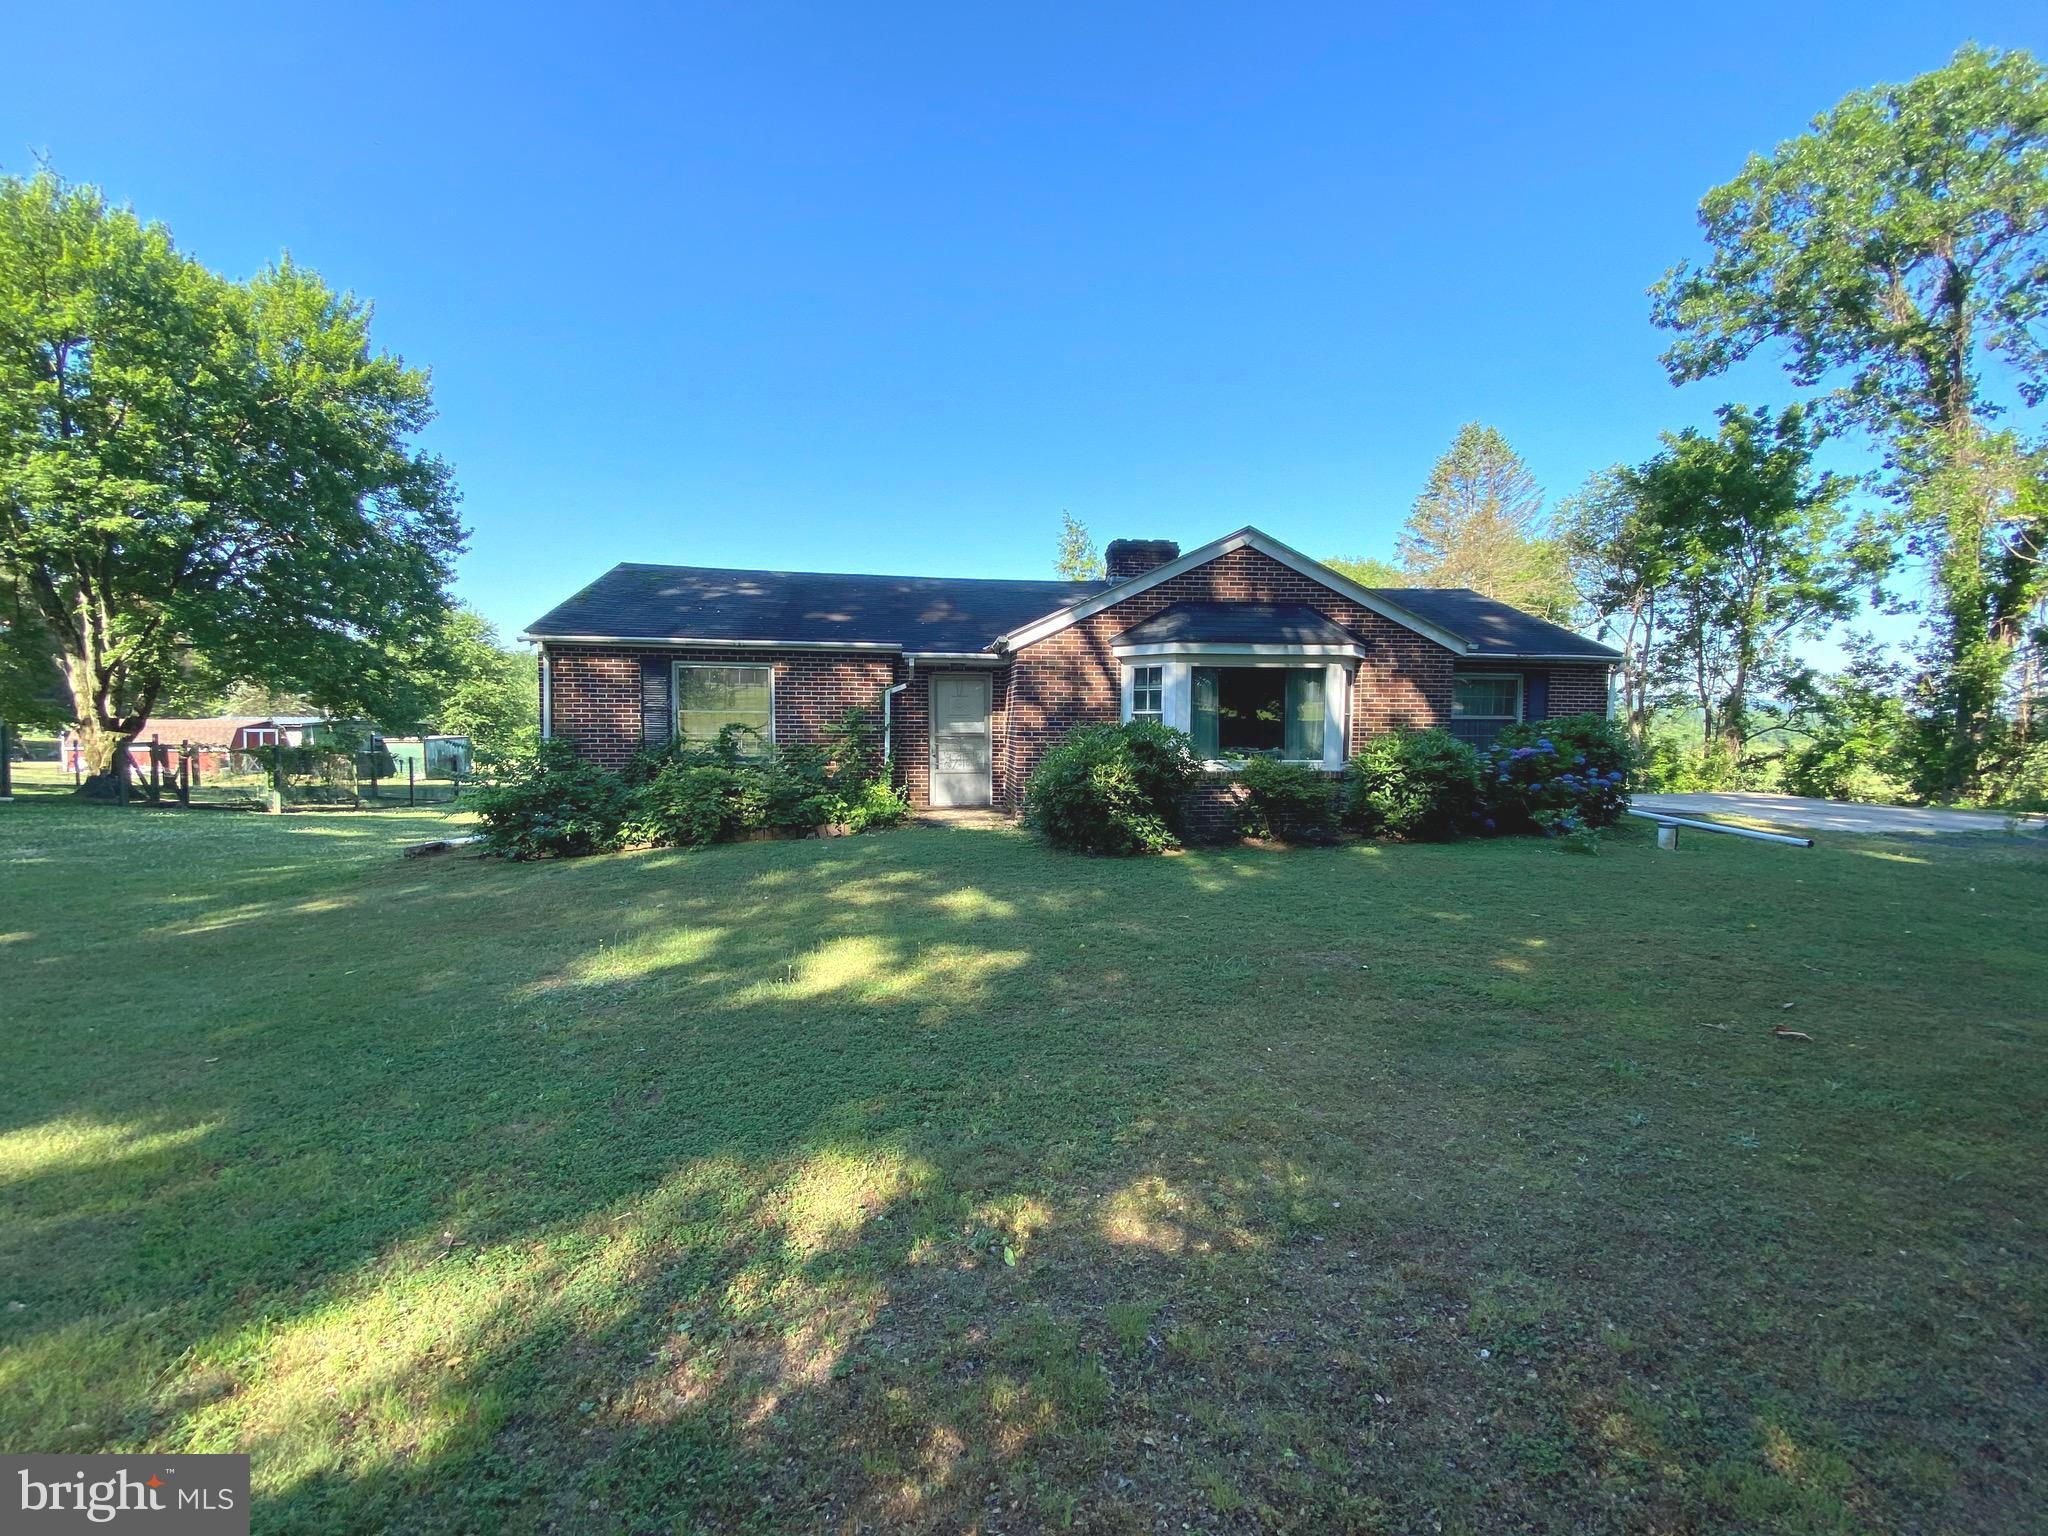 This home provided a lifetime of happiness for the previous owner, and it's time for the next generation to bring it back to life! Have you been shopping for the perfect opportunity to build sweat equity while making a home your own? Look no further! This beautiful brick ranch is situated on a perfect acre with an inground pool and plenty of usable land. A solid wood front door leads to an entryway with hall closet and hardwood floors that flow throughout the living room, dining room, and two of the bedrooms.  The large kitchen could be polished up for a cool vintage look or could be redesigned to fit the needs of the modern buyer. A possible third bedroom, closets galore, and one and a half baths finish off the layout. The basement needs some loving attention, but has the potential for approximately 1000 sq ft of additional living space. The pool needs work, but in its heyday it was the perfect way to take in the open yard and incredible views! There are some newer windows and a 7 year young oil burner. This home has so much to offer the right buyer. Don't miss this fantastic opportunity, and schedule your appointment today!